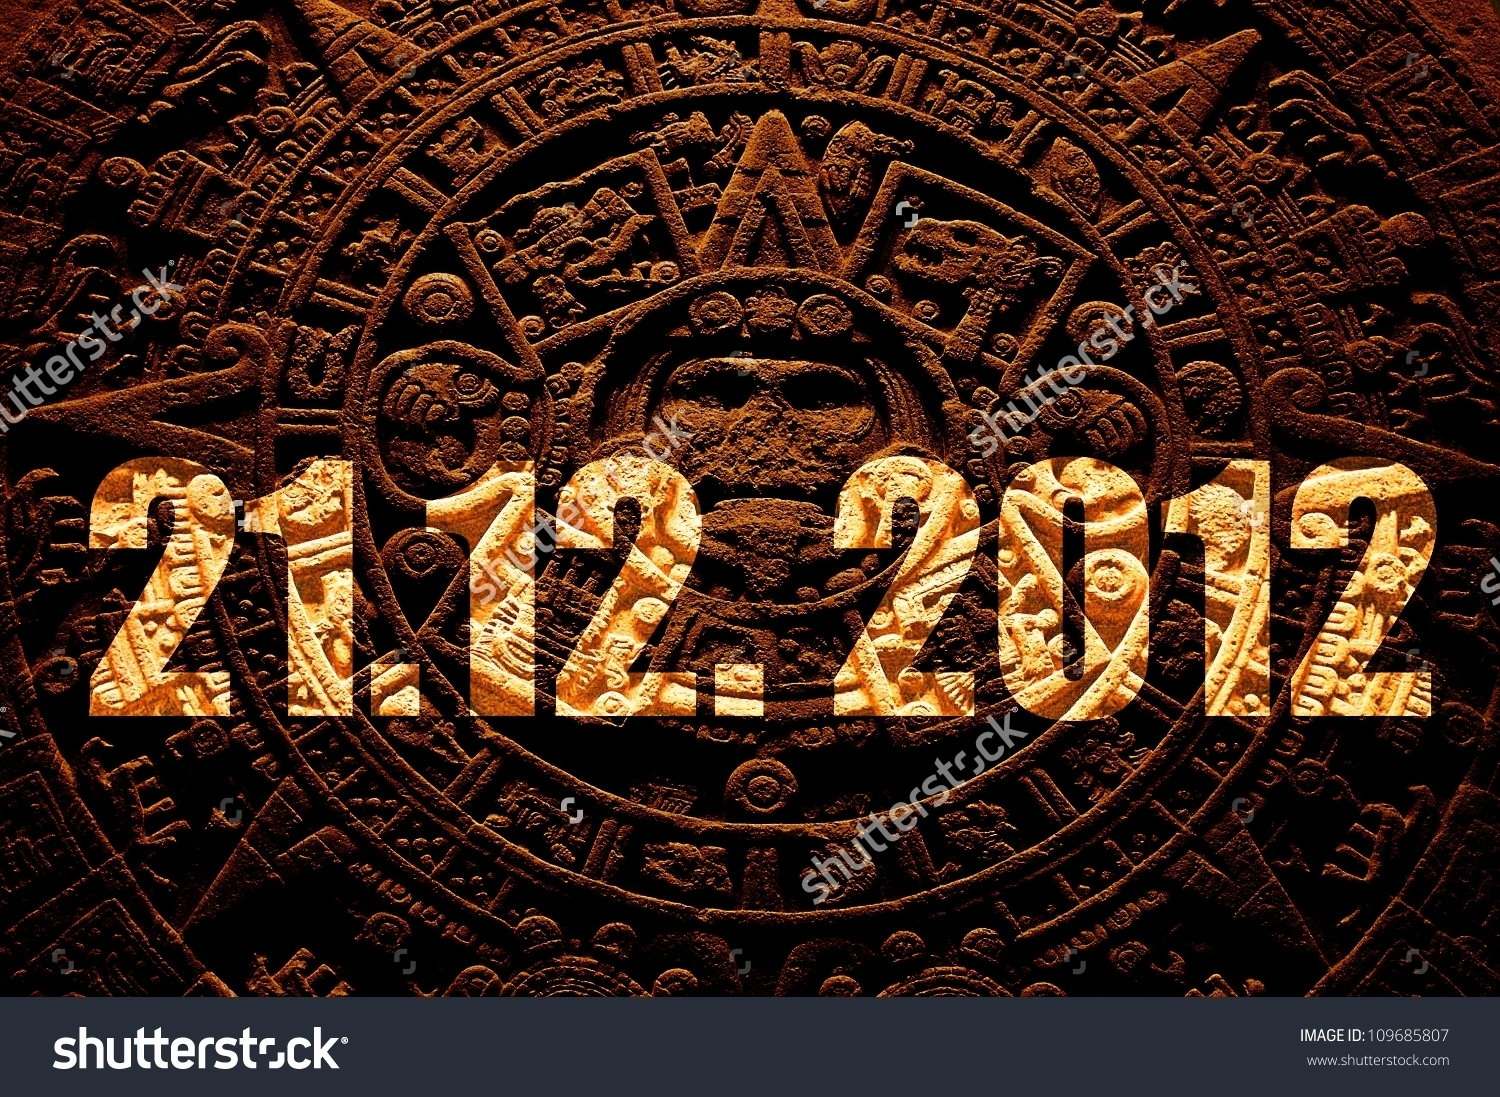 Mayan Calendar End Of The World | Template Calendar Printable inside The End Of The Mayan Calendar